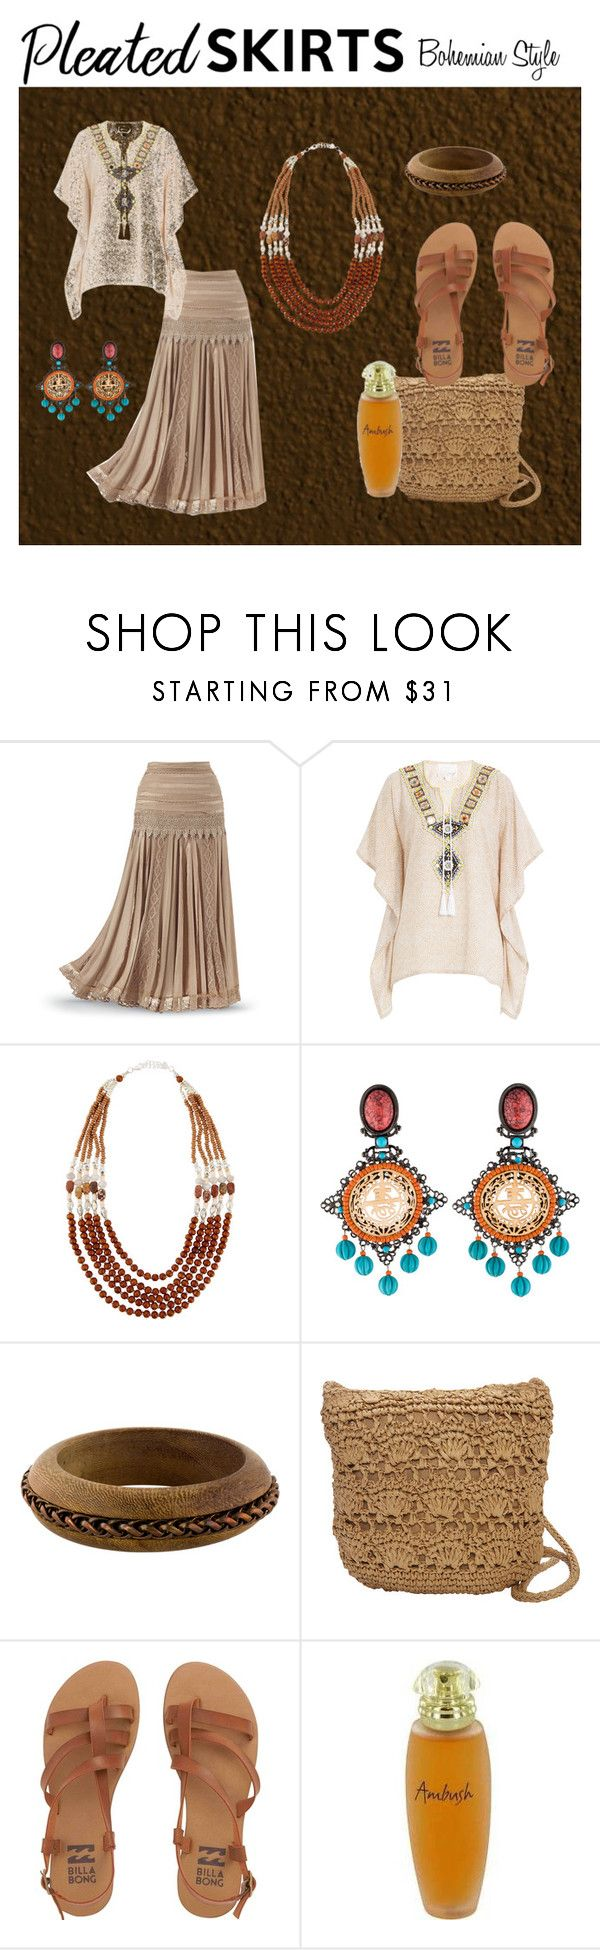 """Bohemian Style Pleated Skirt"" by susan-993 ❤ liked on Polyvore featuring Gooshwa, NAKAMOL, Lawrence Vrba, Dolce&Gabbana, Magid, Billabong and pleatedskirts"